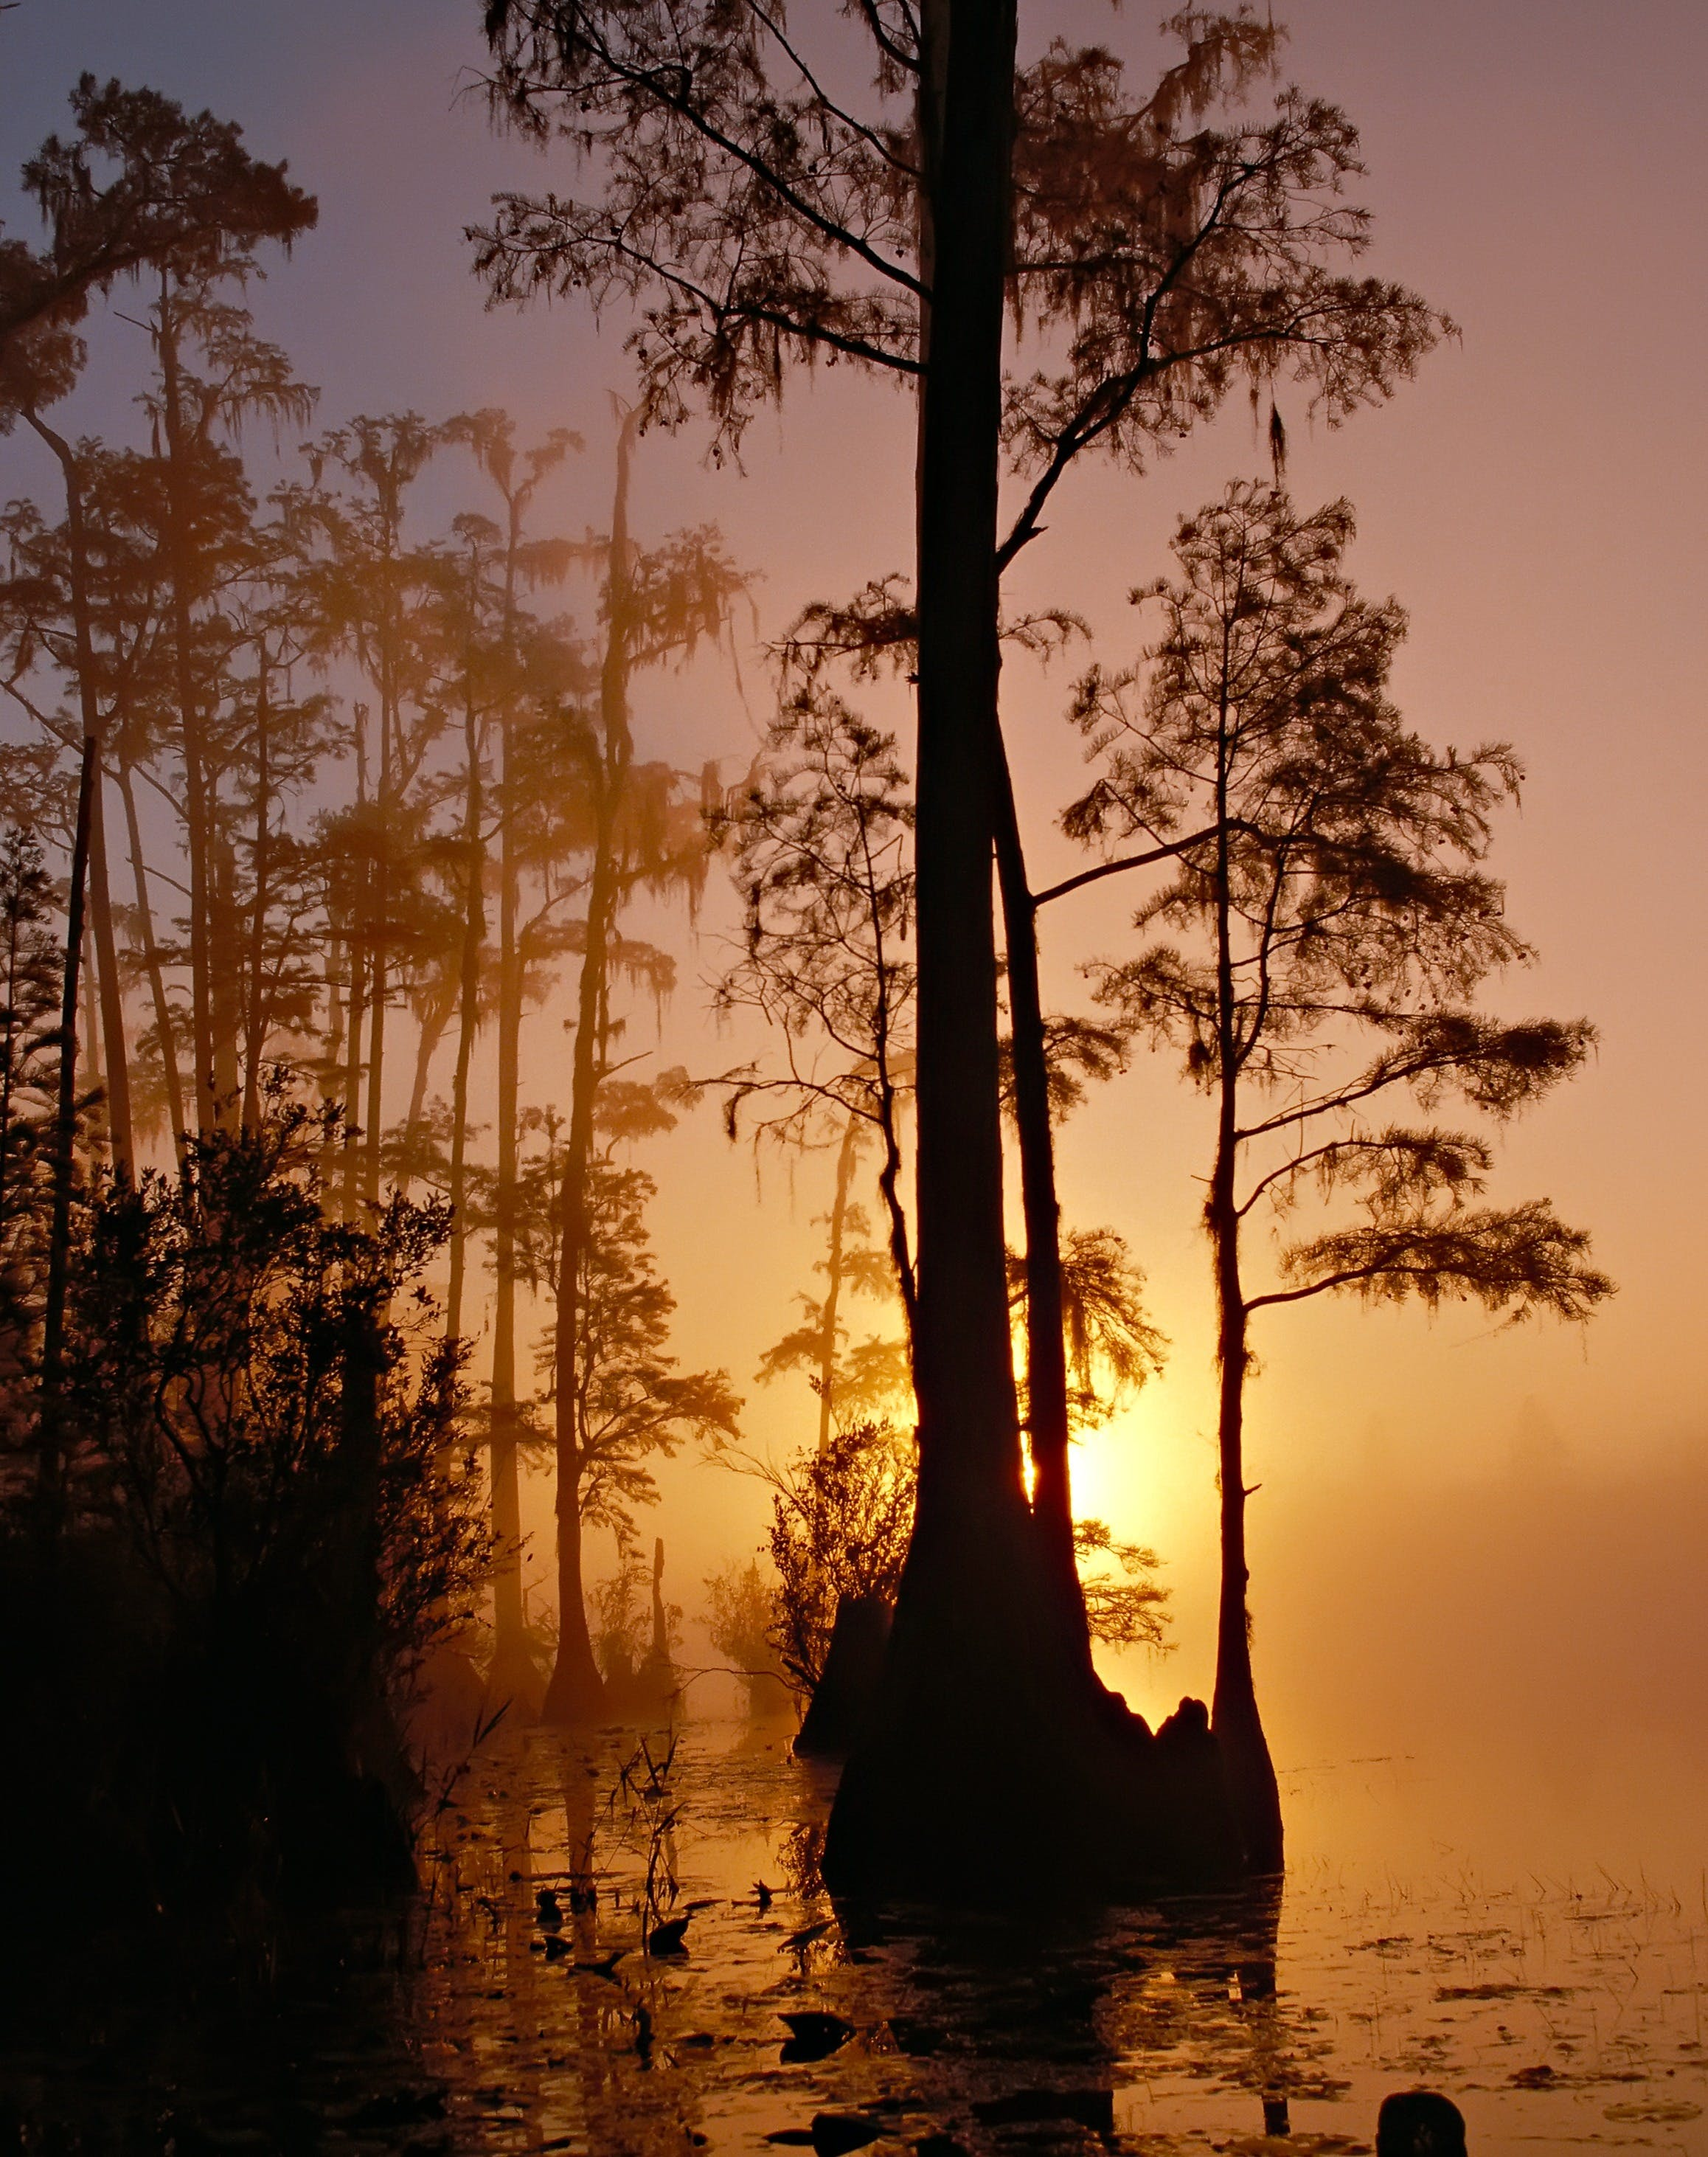 Silhouette of Trees Beside Body of Water during Sunset